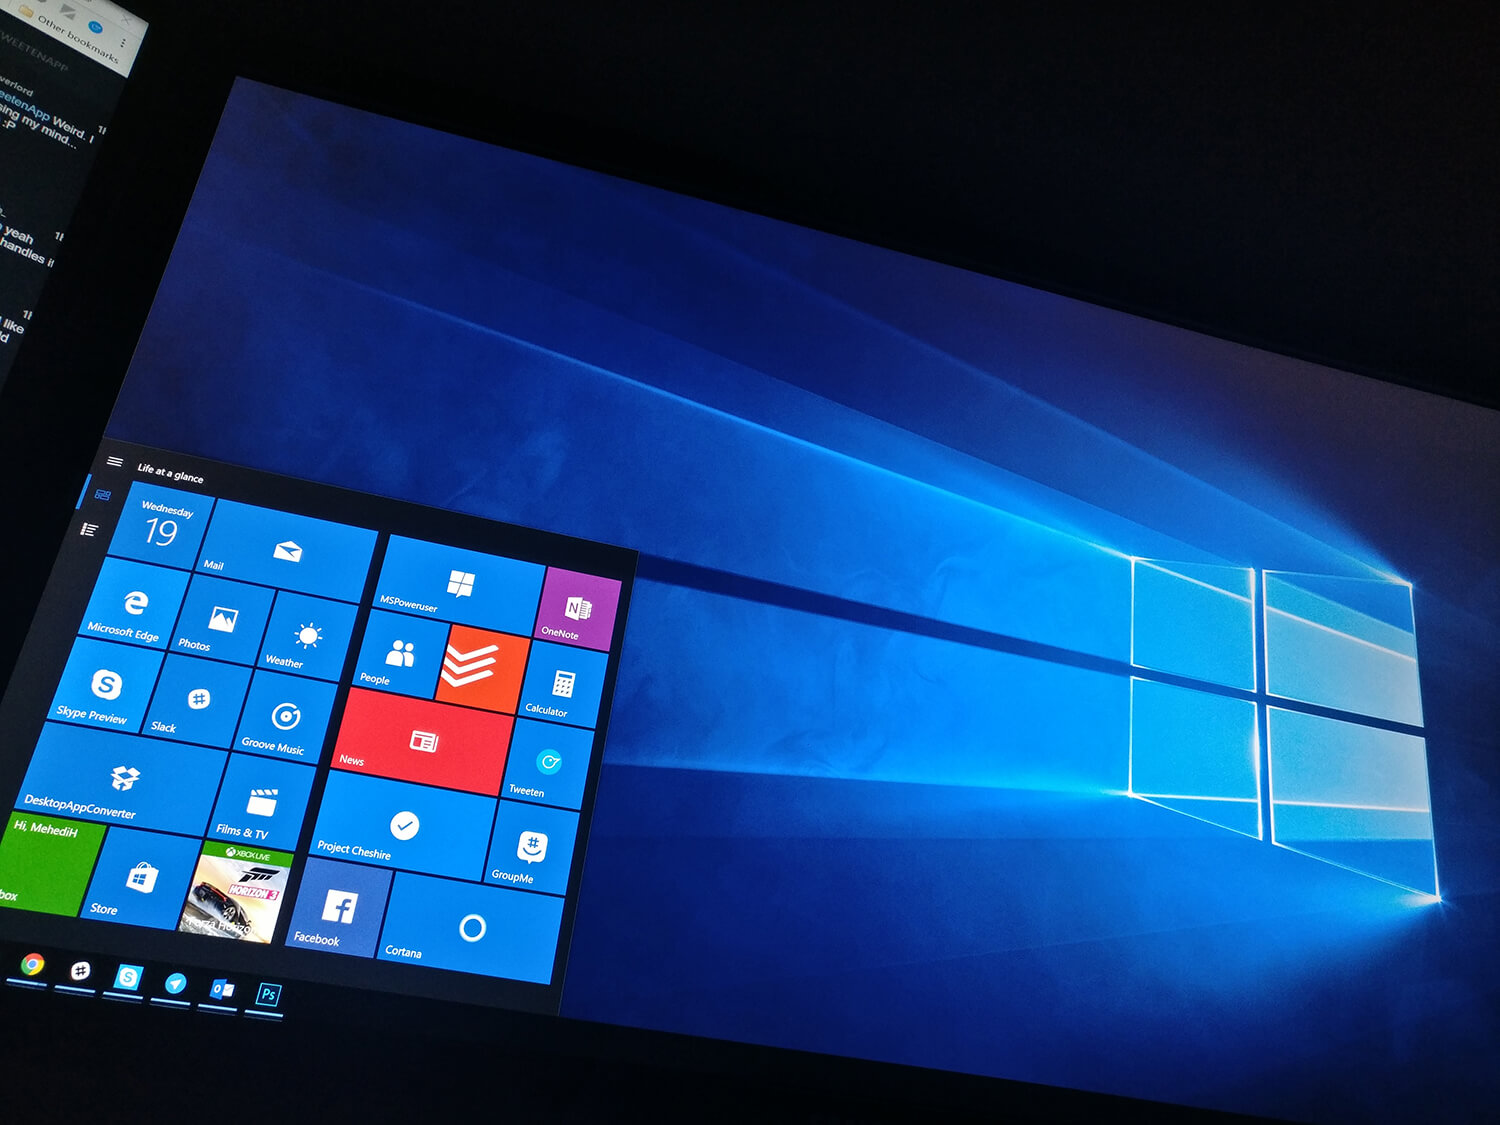 Windows 10 Build 15055 released to Insiders for PCs and Mobile, here's the changelog 1